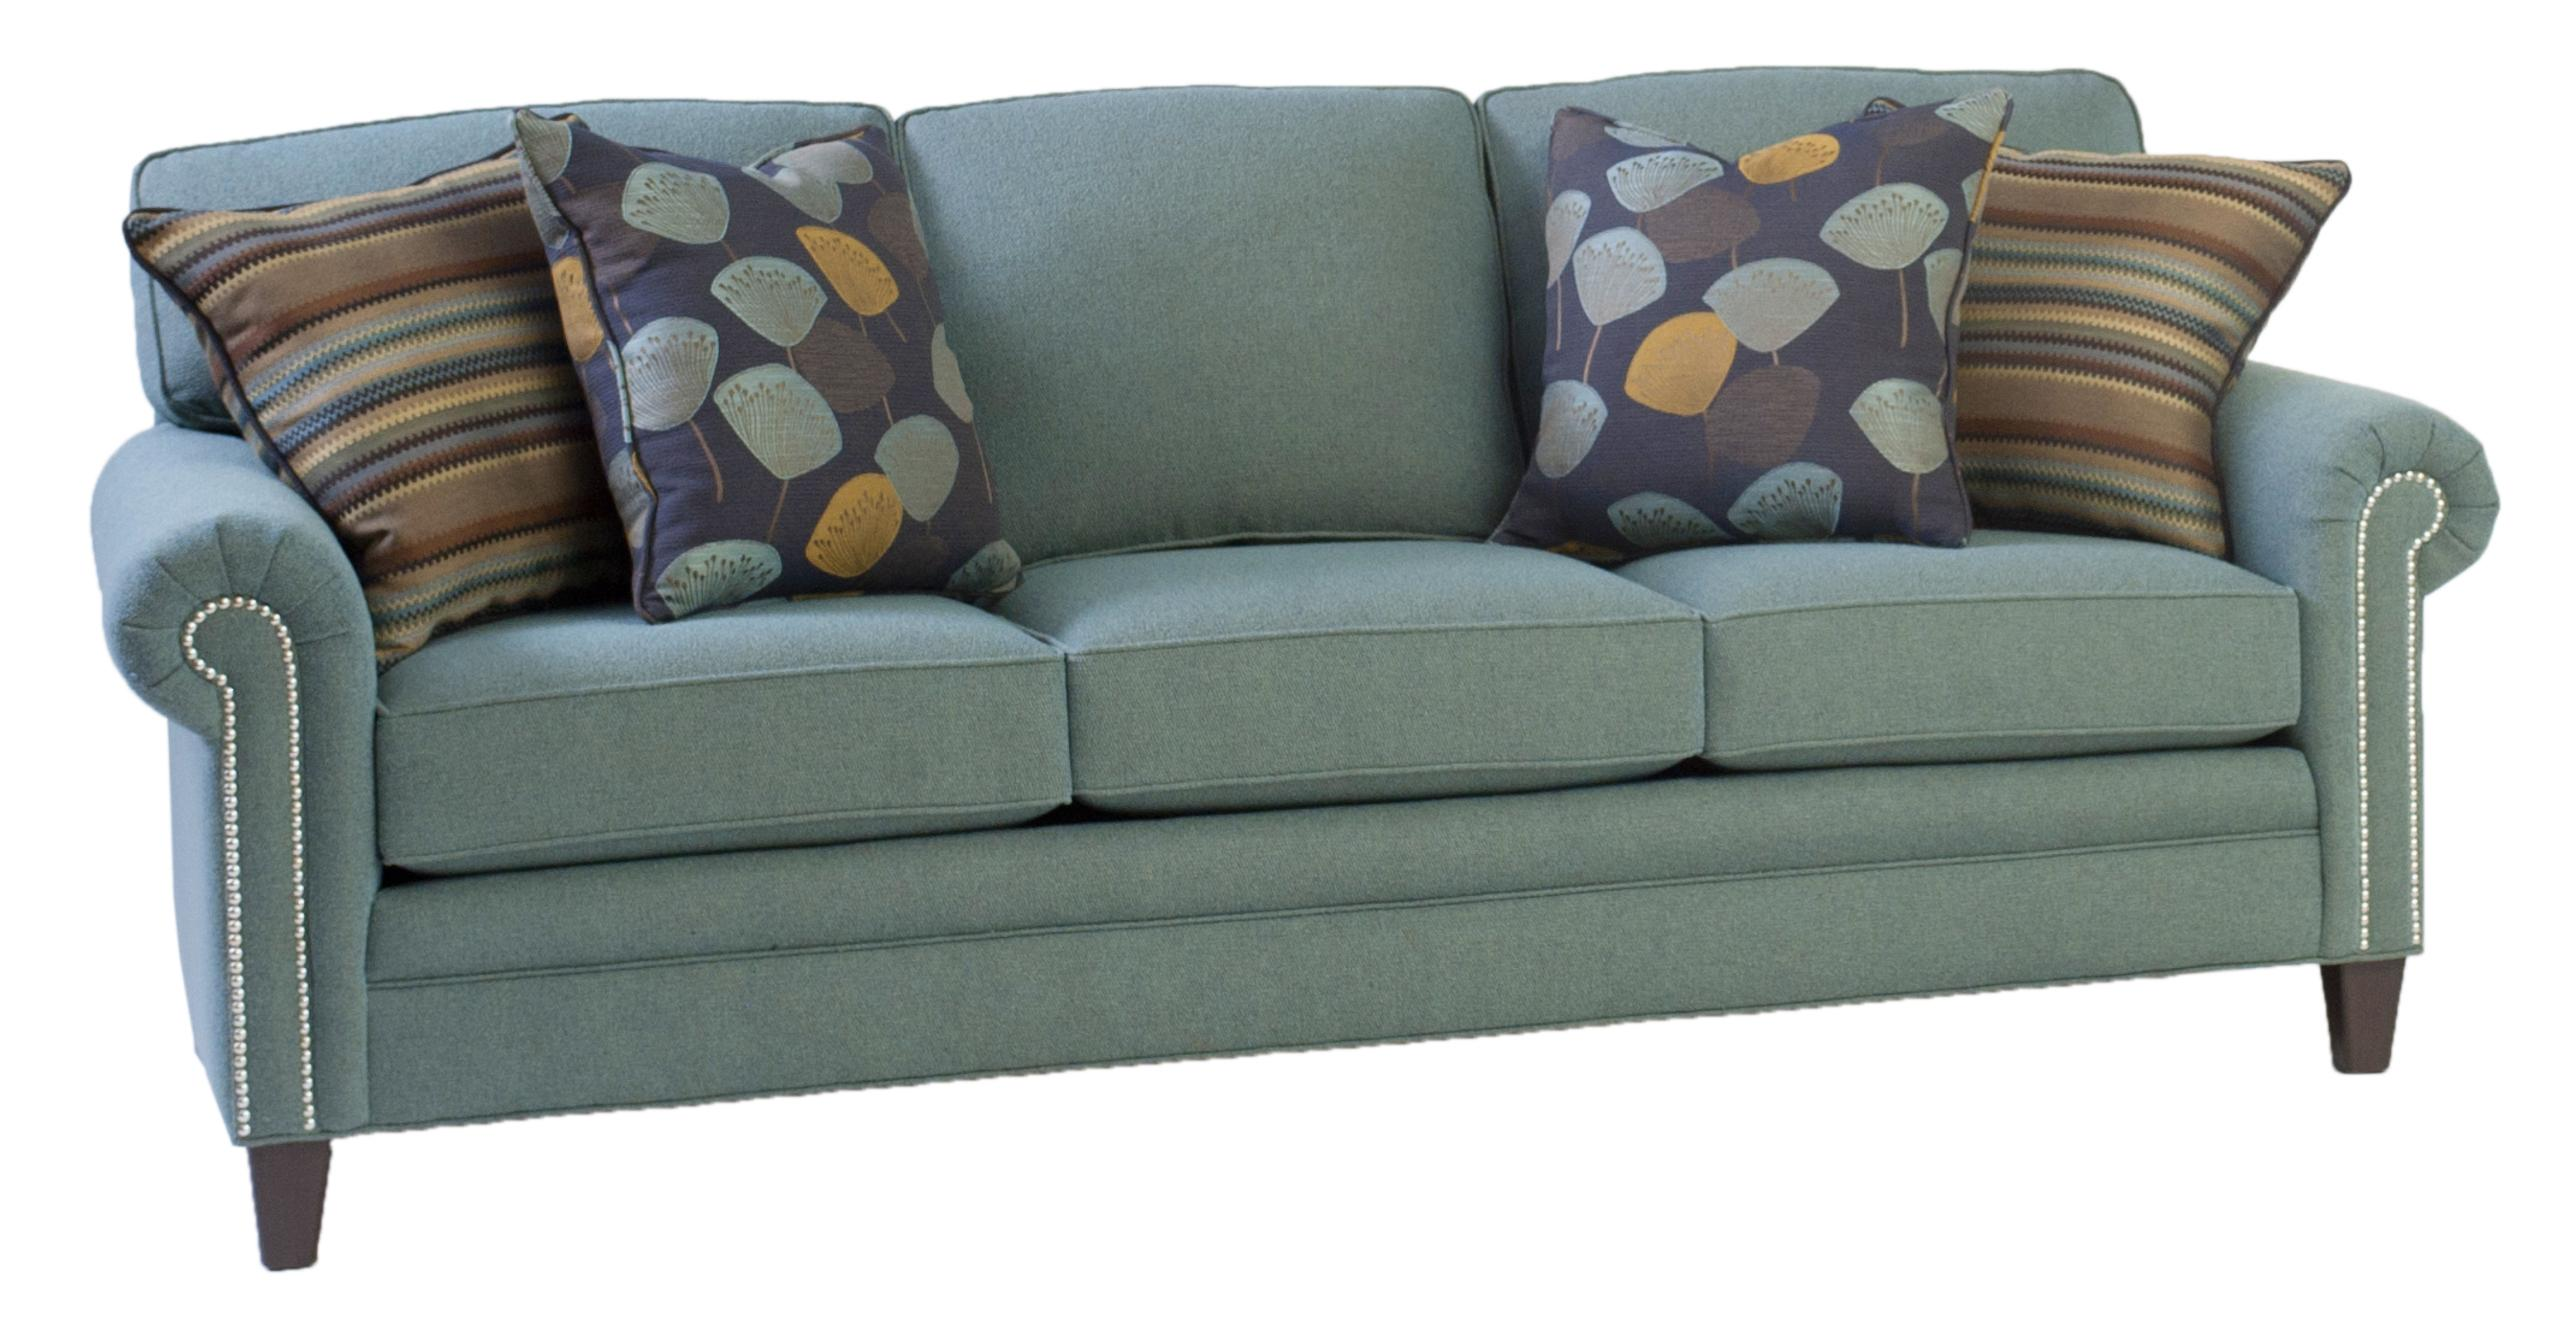 395 Style Group Sofa by Smith Brothers at Rooms for Less